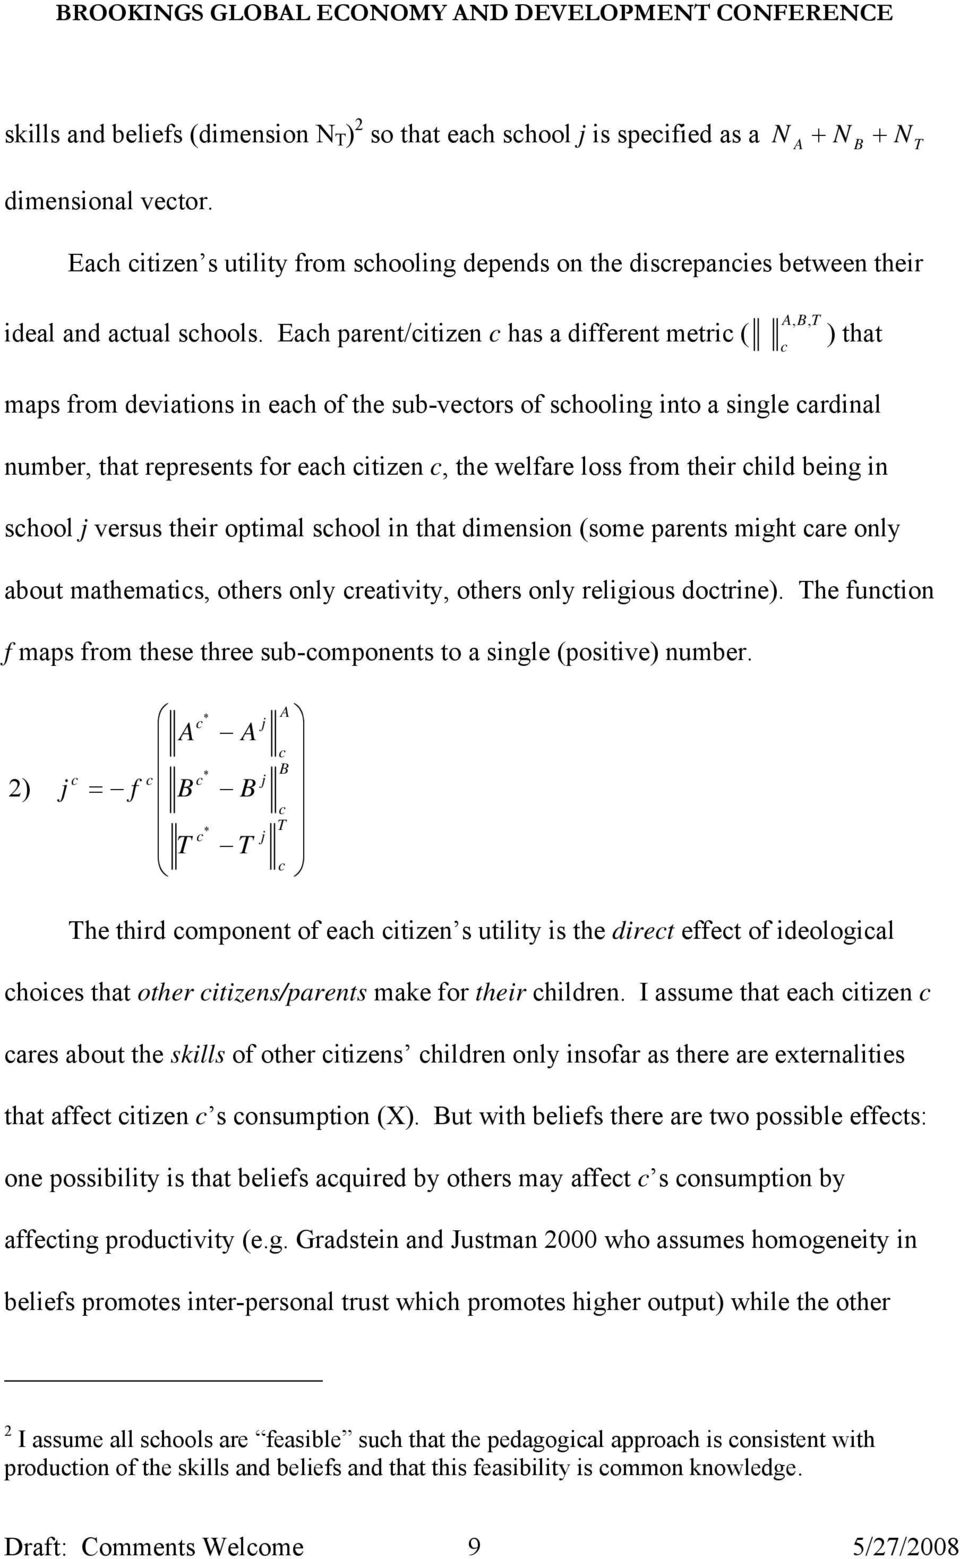 Each parent/citizen c has a different metric ( A, B, T c ) that maps from deviations in each of the sub-vectors of schooling into a single cardinal number, that represents for each citizen c, the